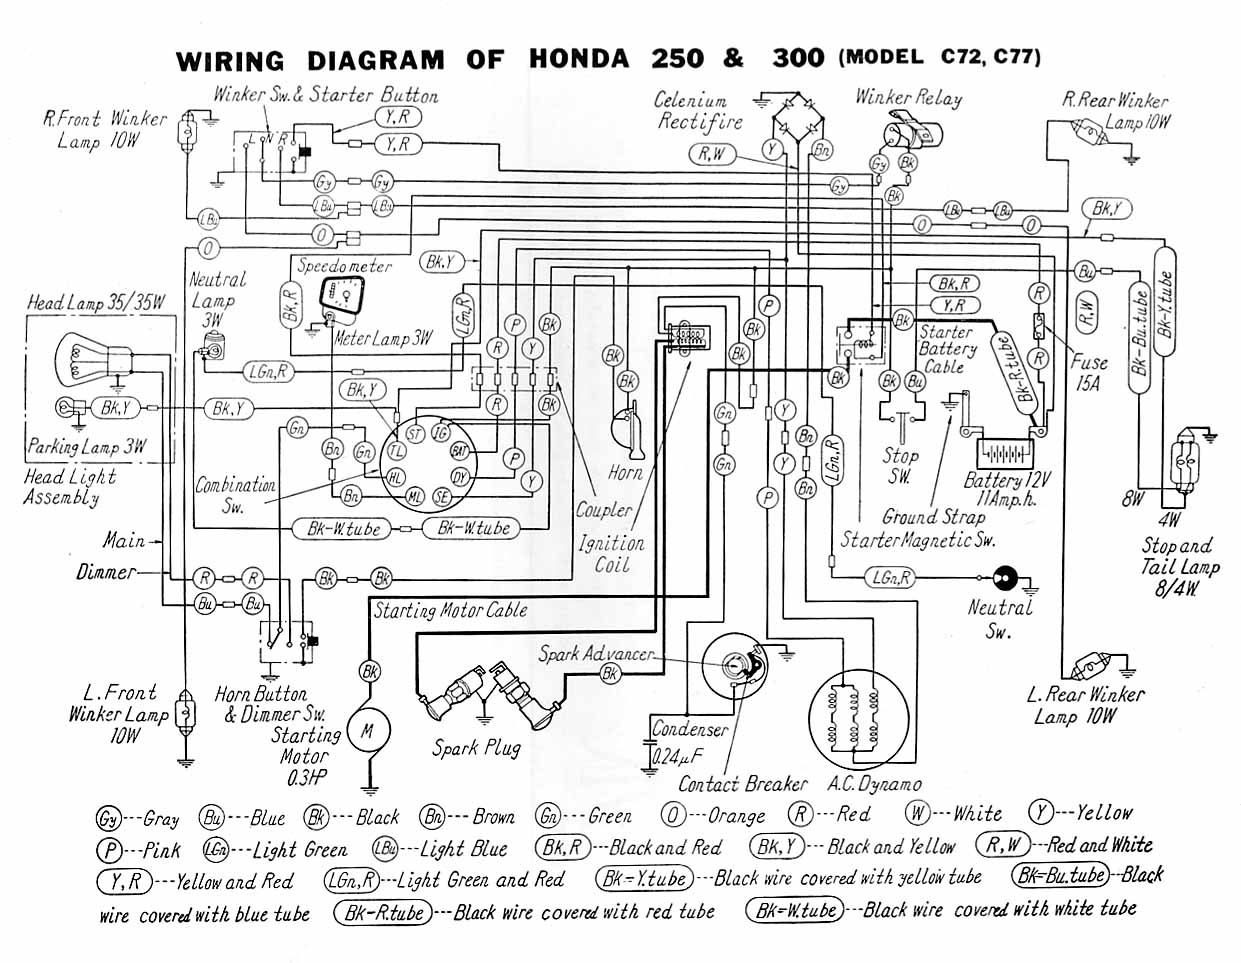 honda xrm rs 125 electrical wiring diagram 2001 accord of tmx 155 contact point | library